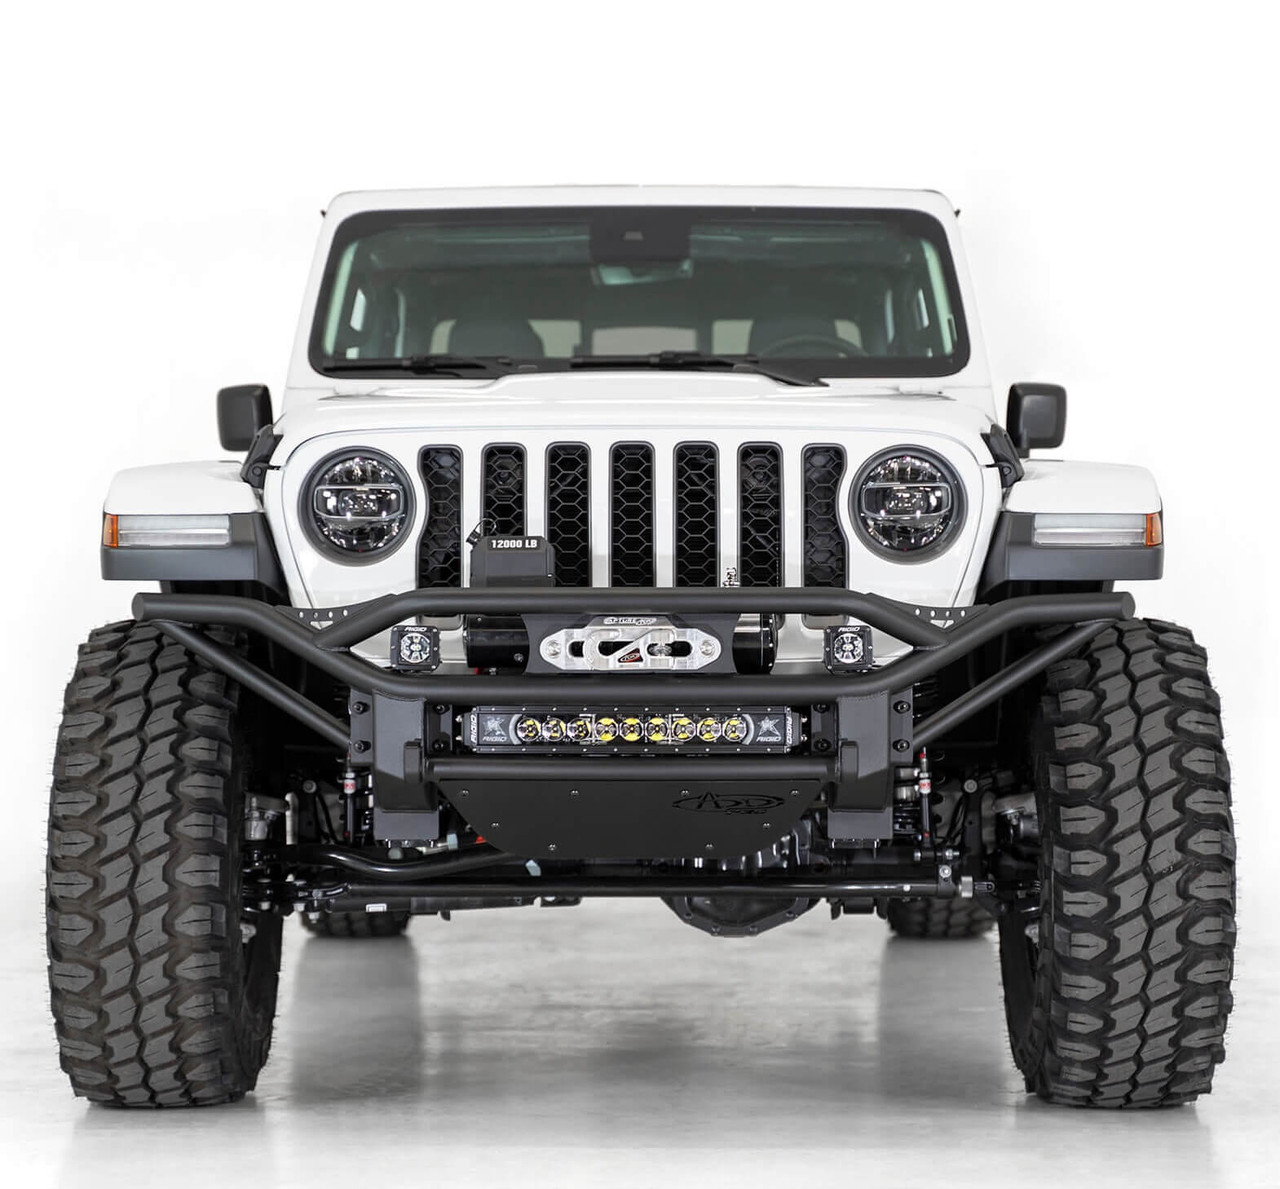 ADD Pro Bolt-On Front Bumper For Jeep Wrangler JL/Jeep Gladiator JT - F978122130103